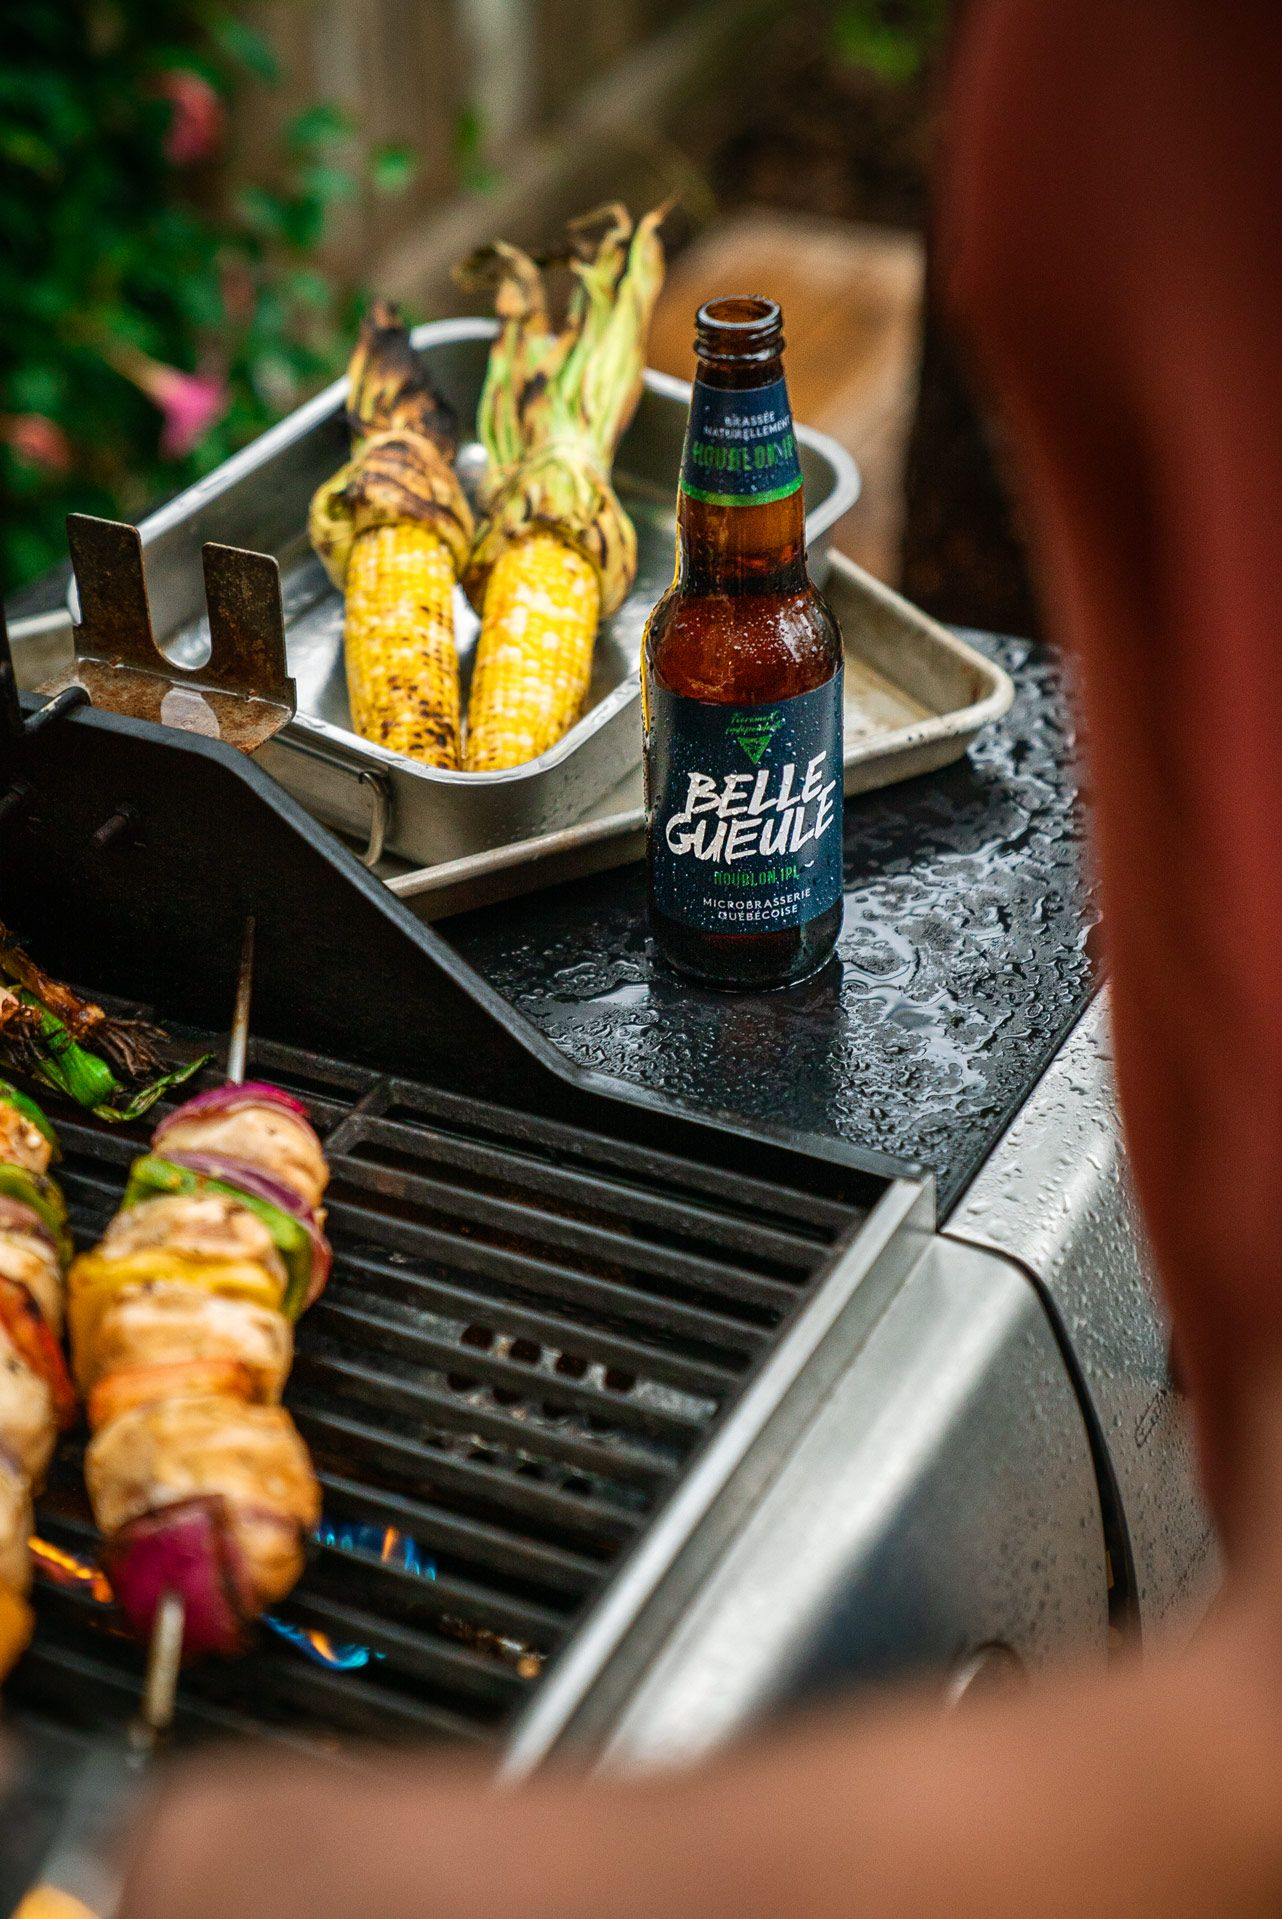 man grilling on barbecue turning chicken skewers with Belle Gueule beer and grilled corn cobs in the center photographed by Bruno Florin for Belle Gueule with Forsman & Bodenfors